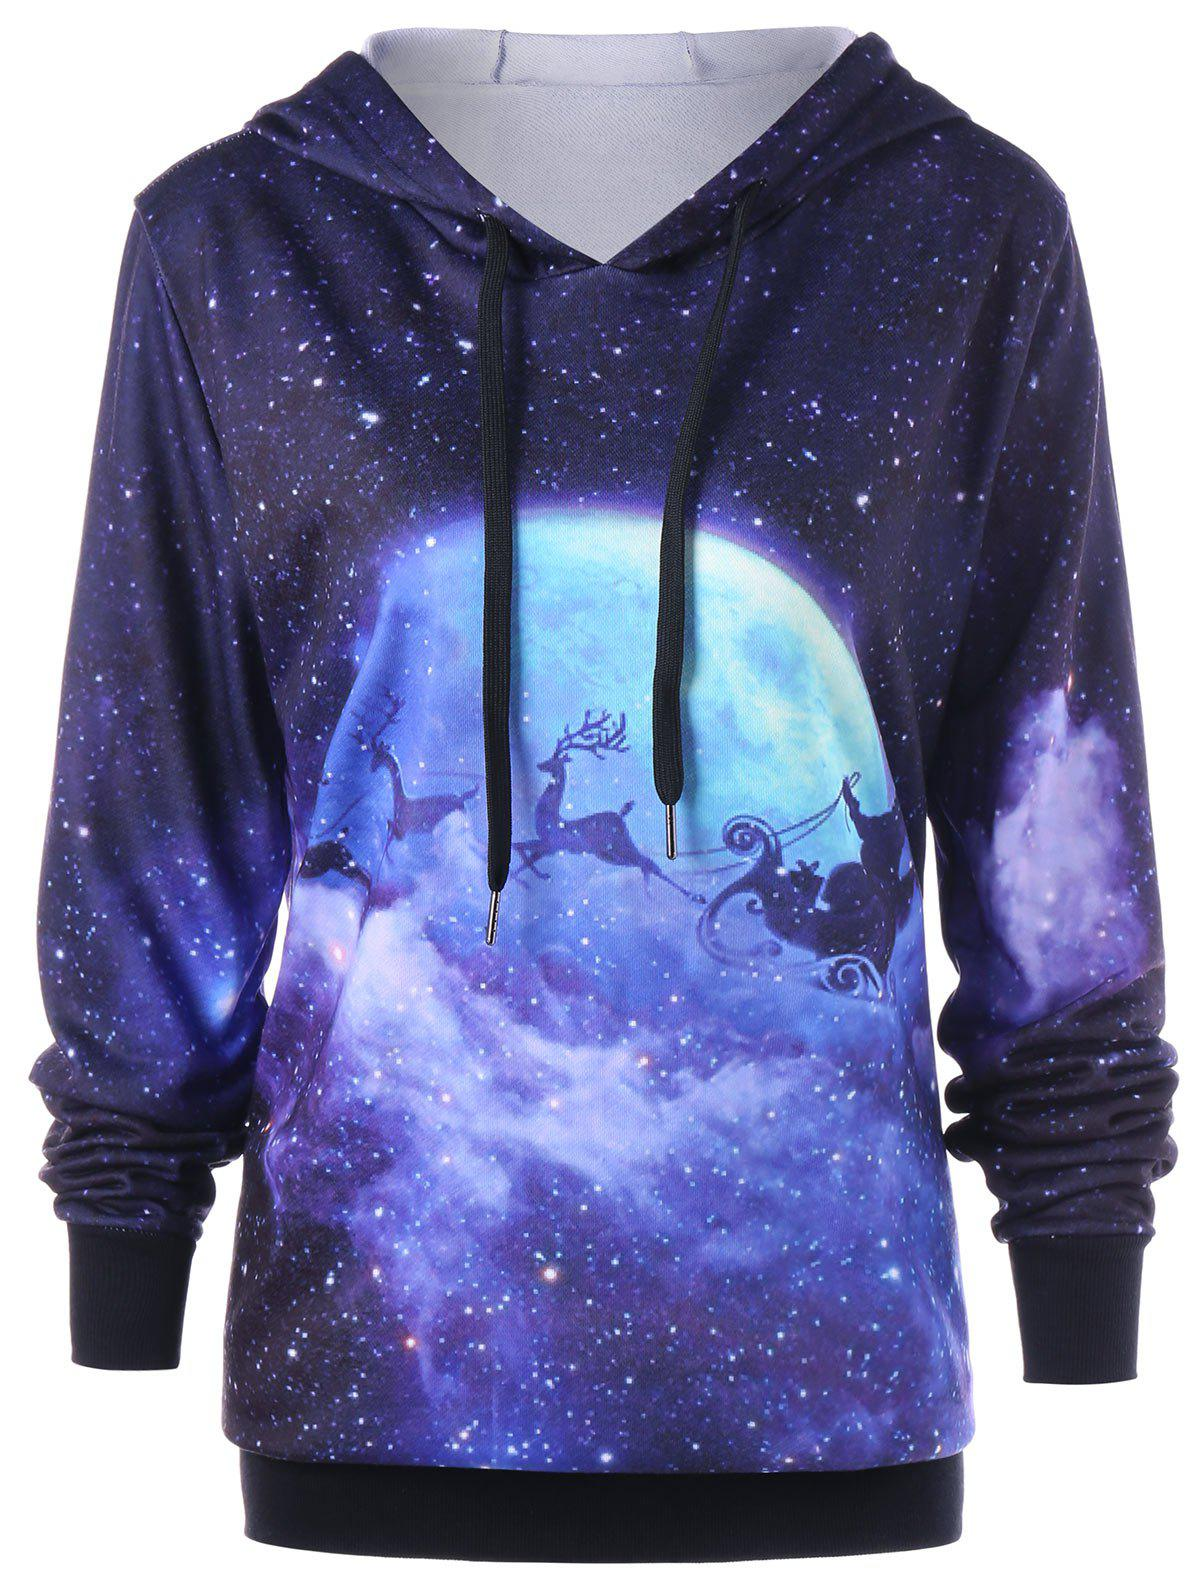 Plus Size Galaxy Reindeer Christmas HoodieWOMEN<br><br>Size: 3XL; Color: COLORMIX; Material: Polyester; Shirt Length: Long; Sleeve Length: Full; Style: Casual; Pattern Style: Animal,Character; Season: Fall,Spring; Weight: 0.5000kg; Package Contents: 1 x Hoodie;